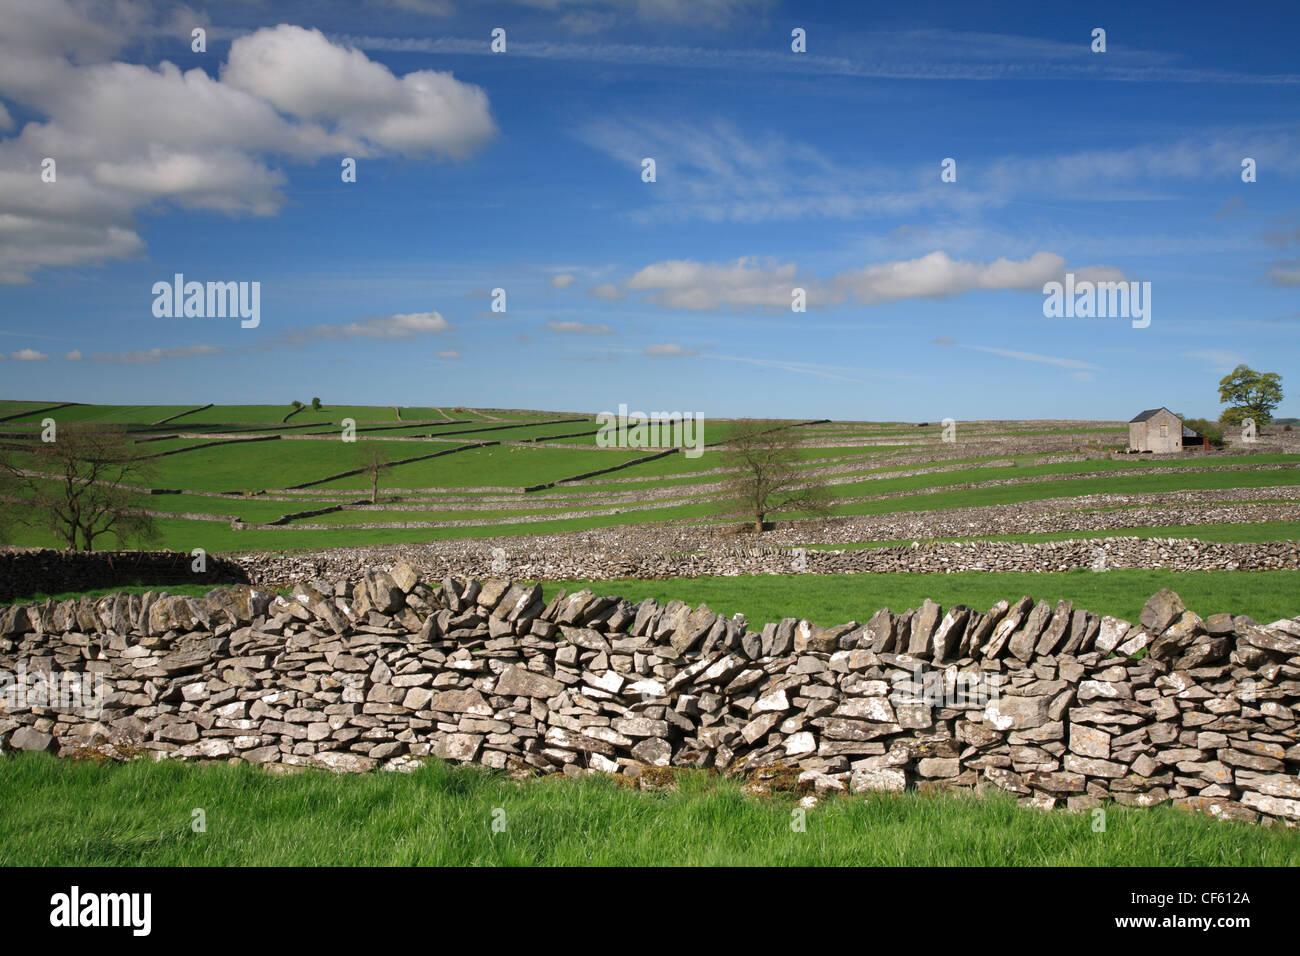 Field enclosures and barn at Litton in the Peak District National Park. Stock Photo